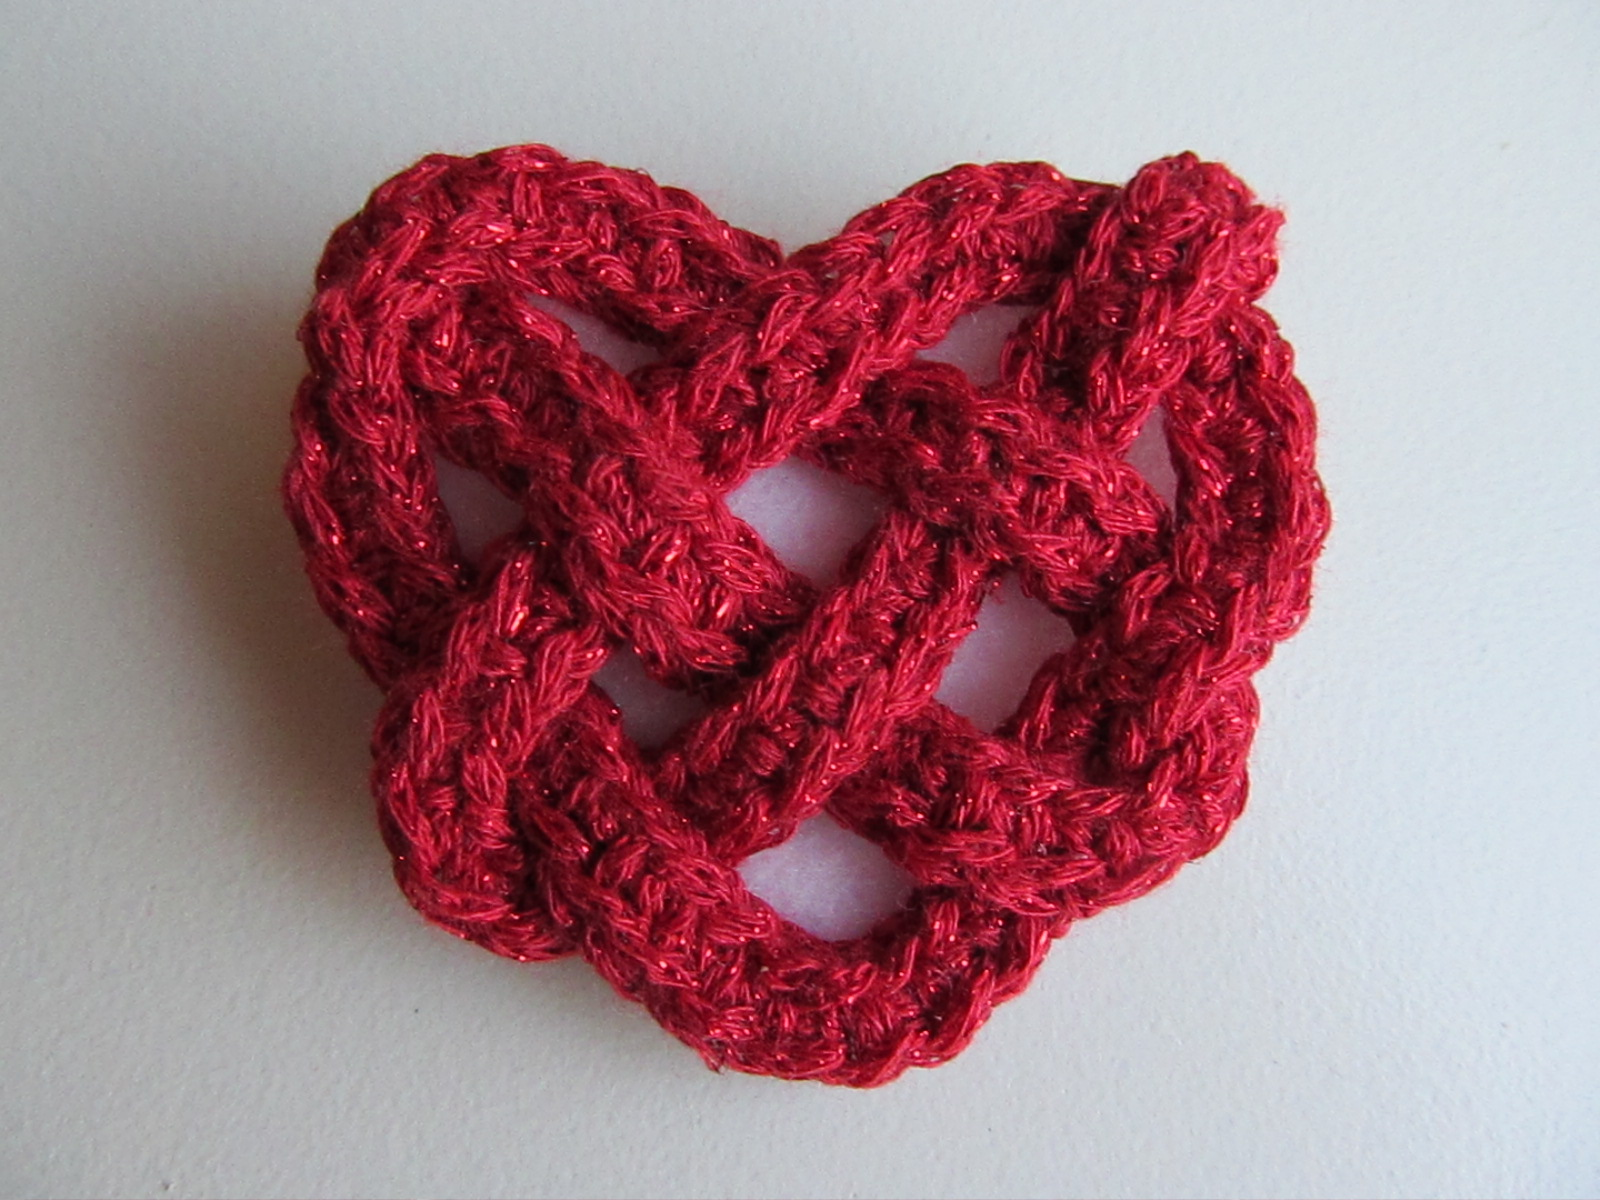 Crochet Knot : Celtic Knot Crochet: Celtic Knot Crochet Products